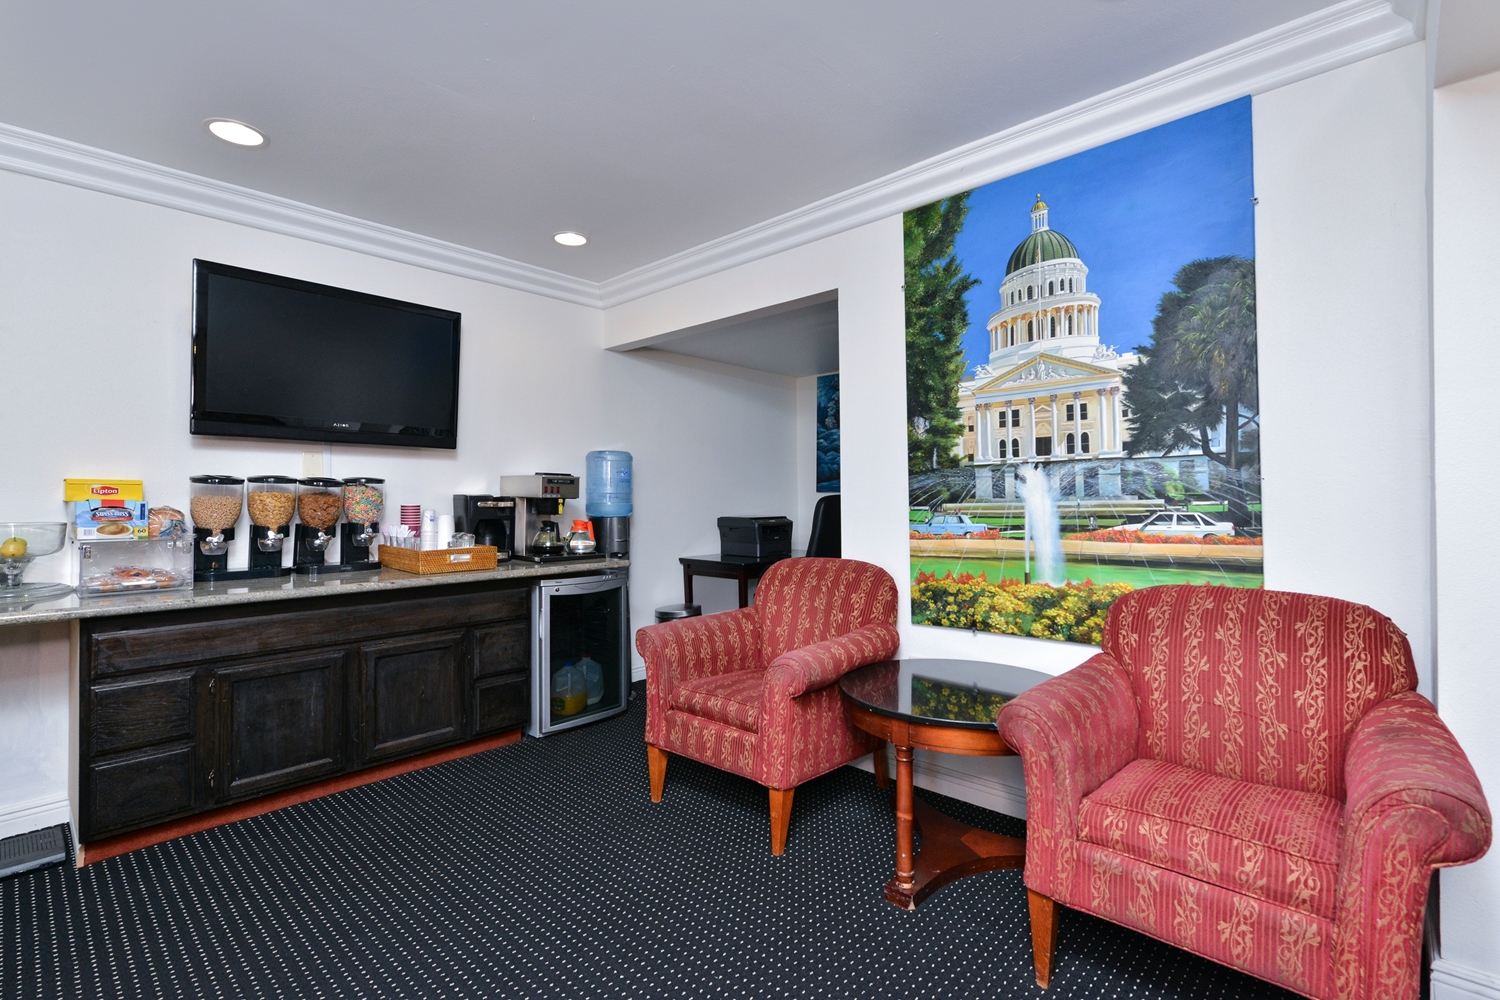 proam - Americas Best Value Inn Downtown Sacramento